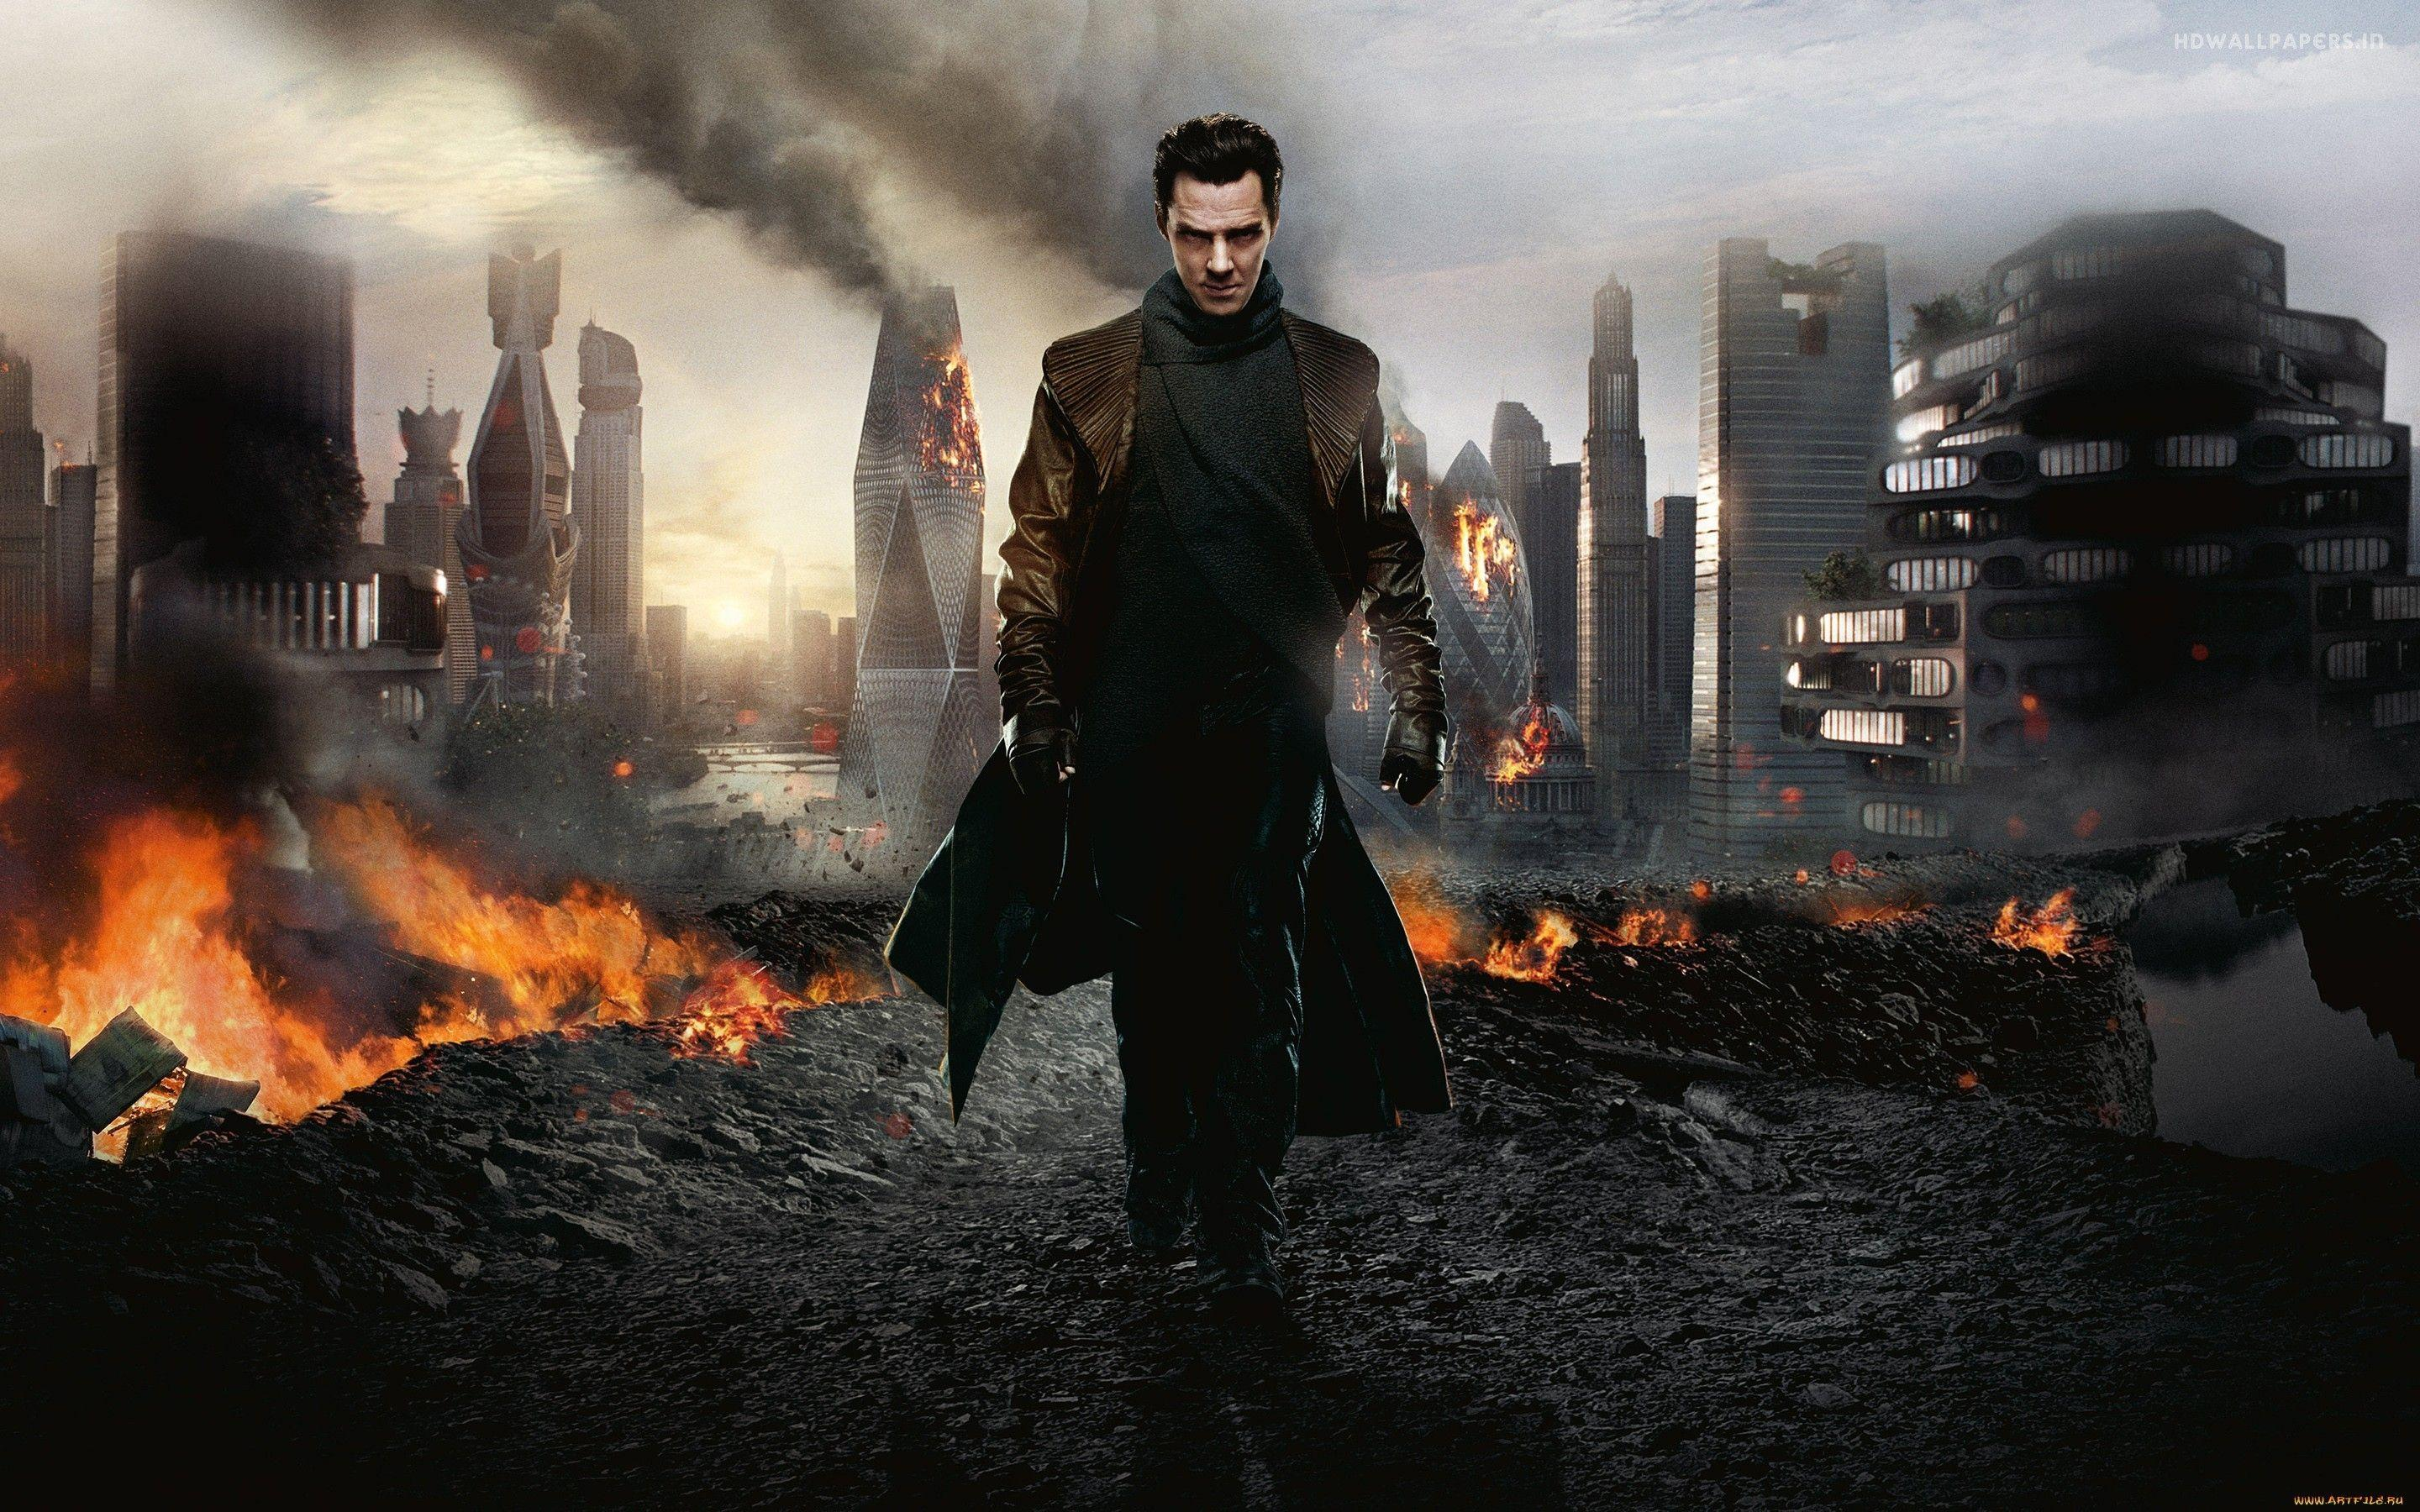 Movies star trek benedict cumberbatch into darkness wallpapers